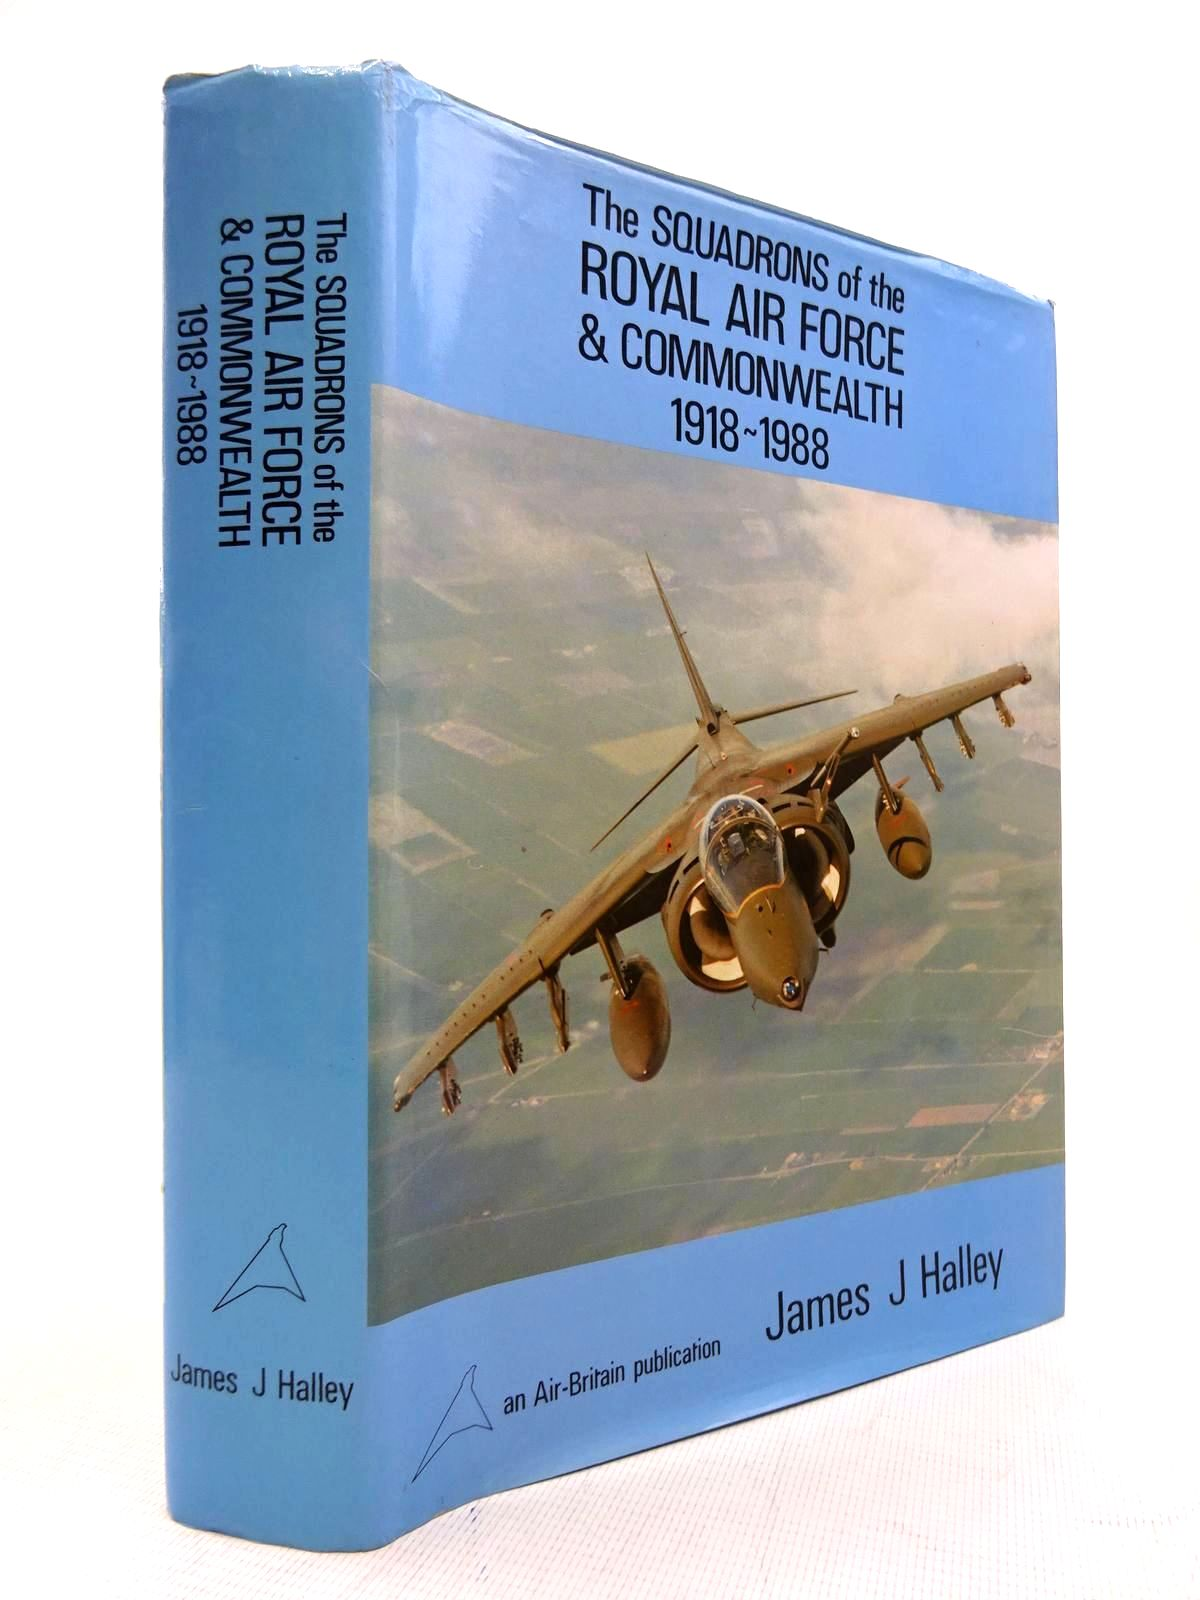 Photo of THE SQUADRONS OF THE ROYAL AIR FORCE & COMMONWEALTH 1918-1988 written by Halley, James J. published by Air-Britain (historians) Ltd. (STOCK CODE: 1816100)  for sale by Stella & Rose's Books